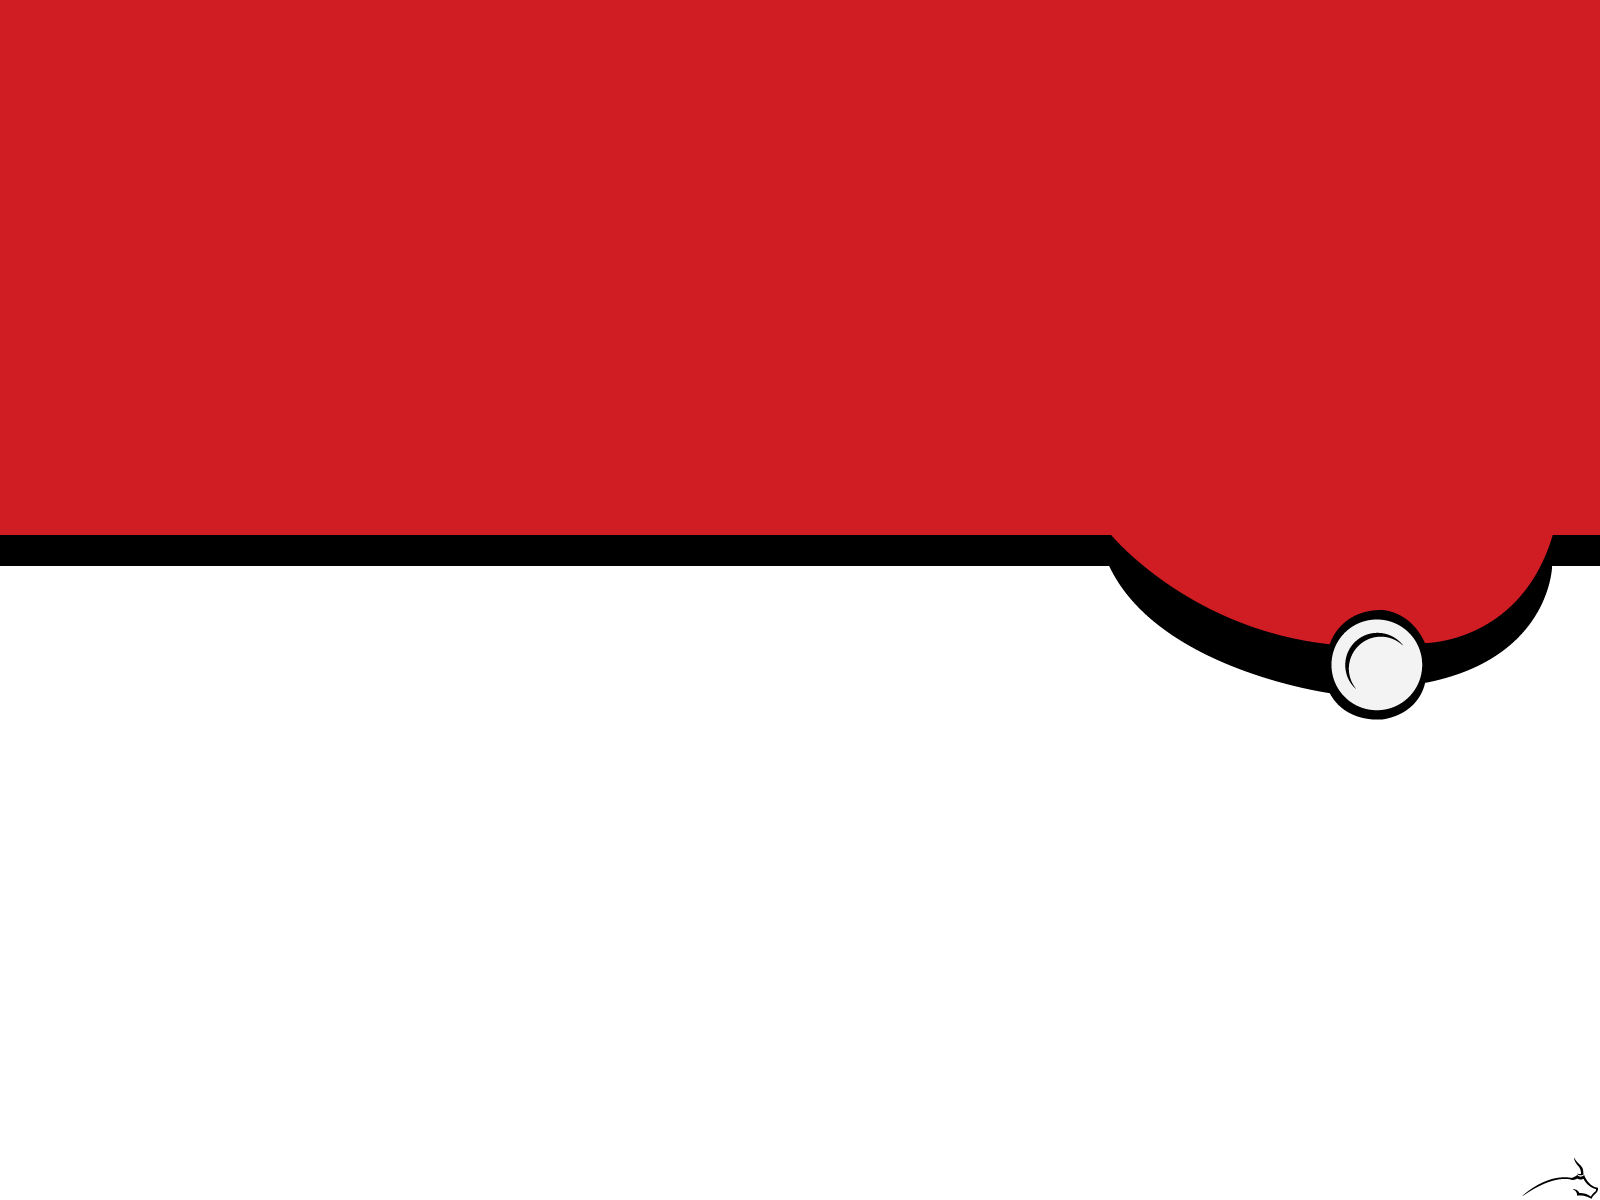 PokeBall Wall Paper